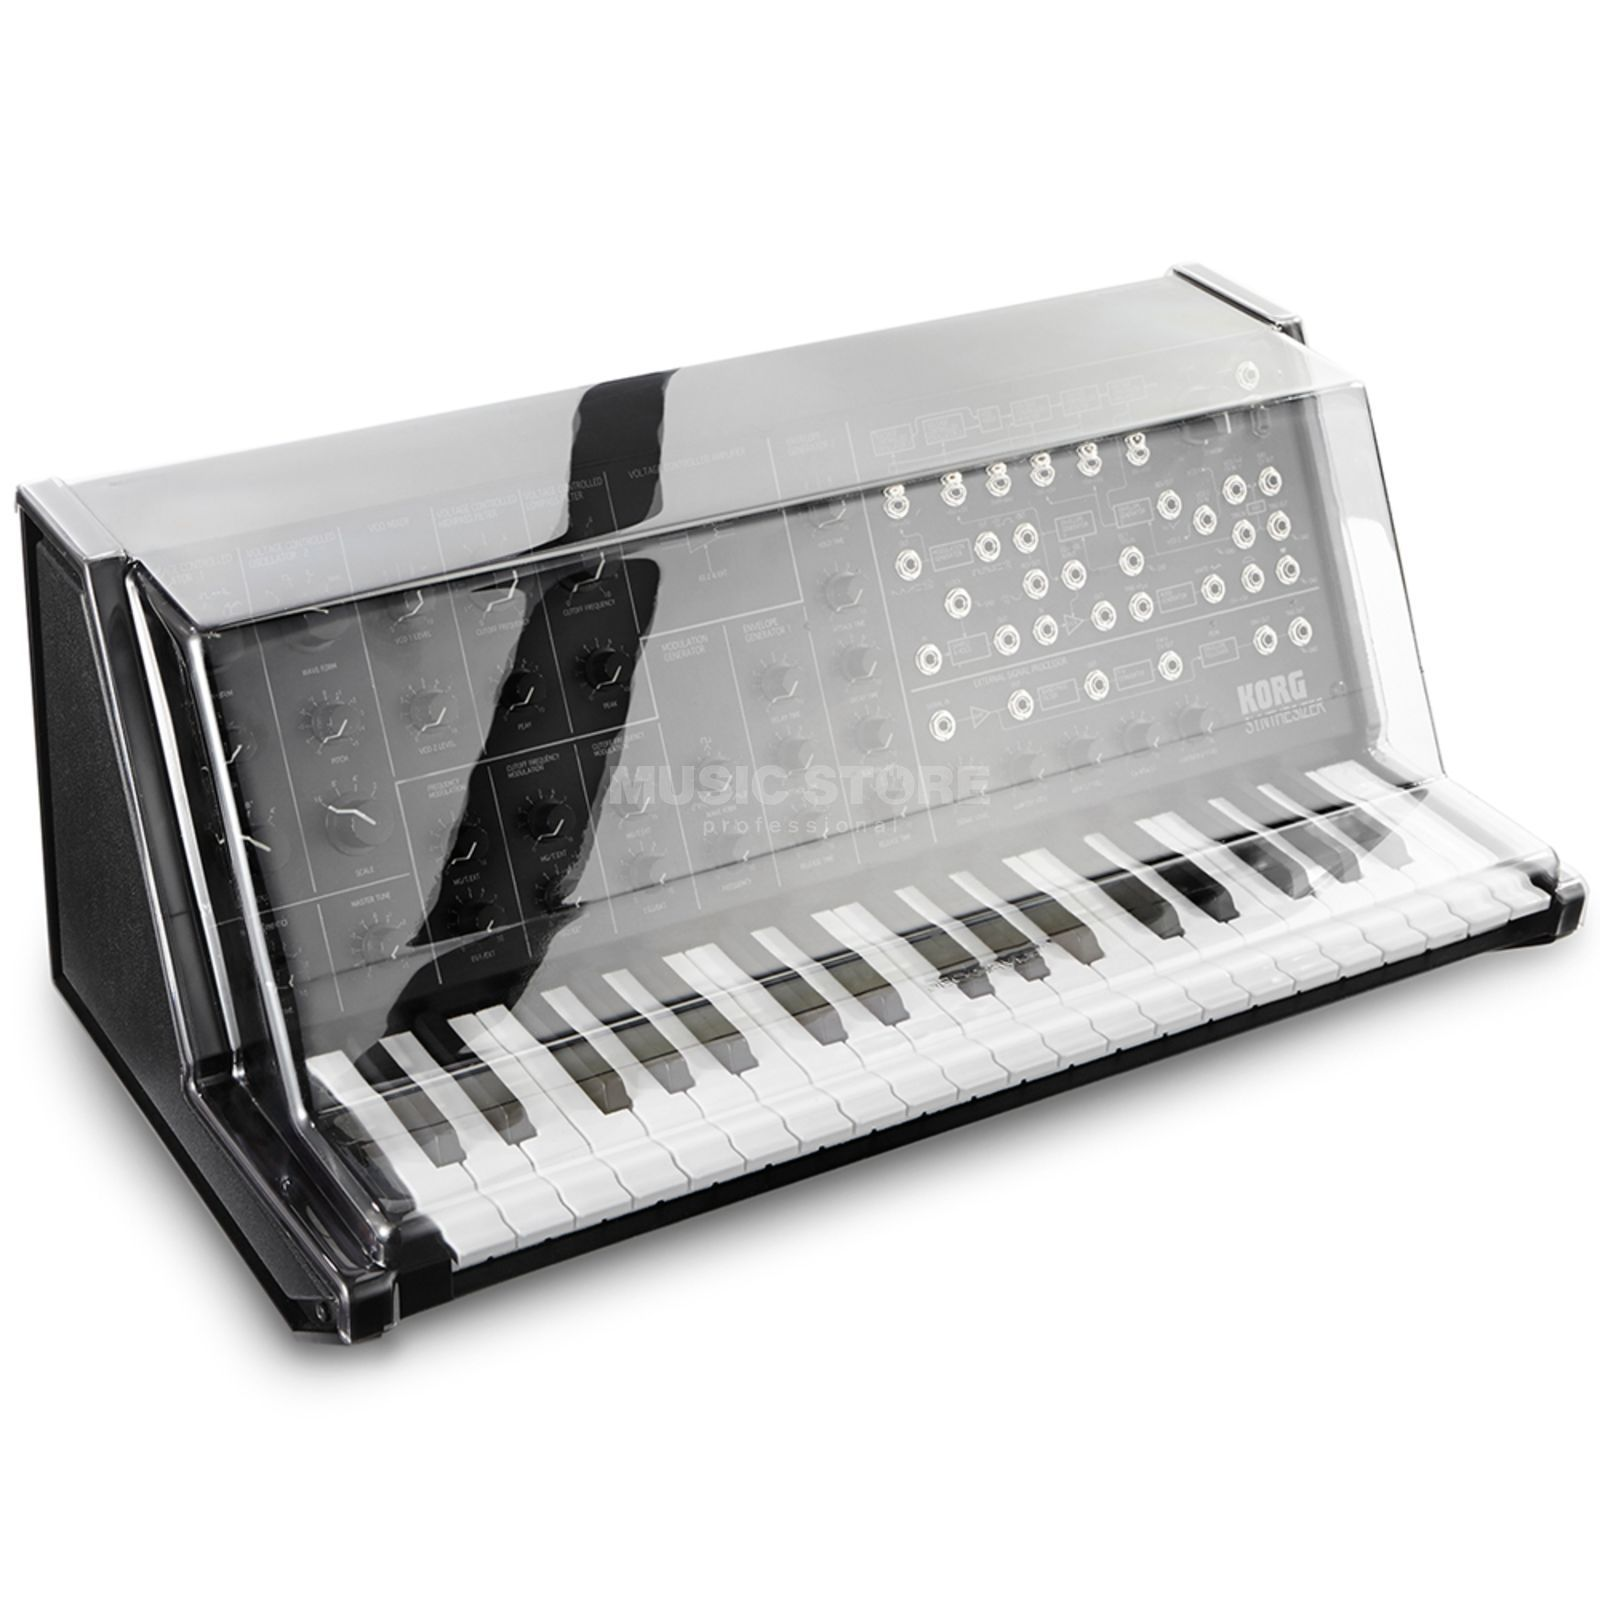 Decksaver Korg MS20 Mini Cover Product Image